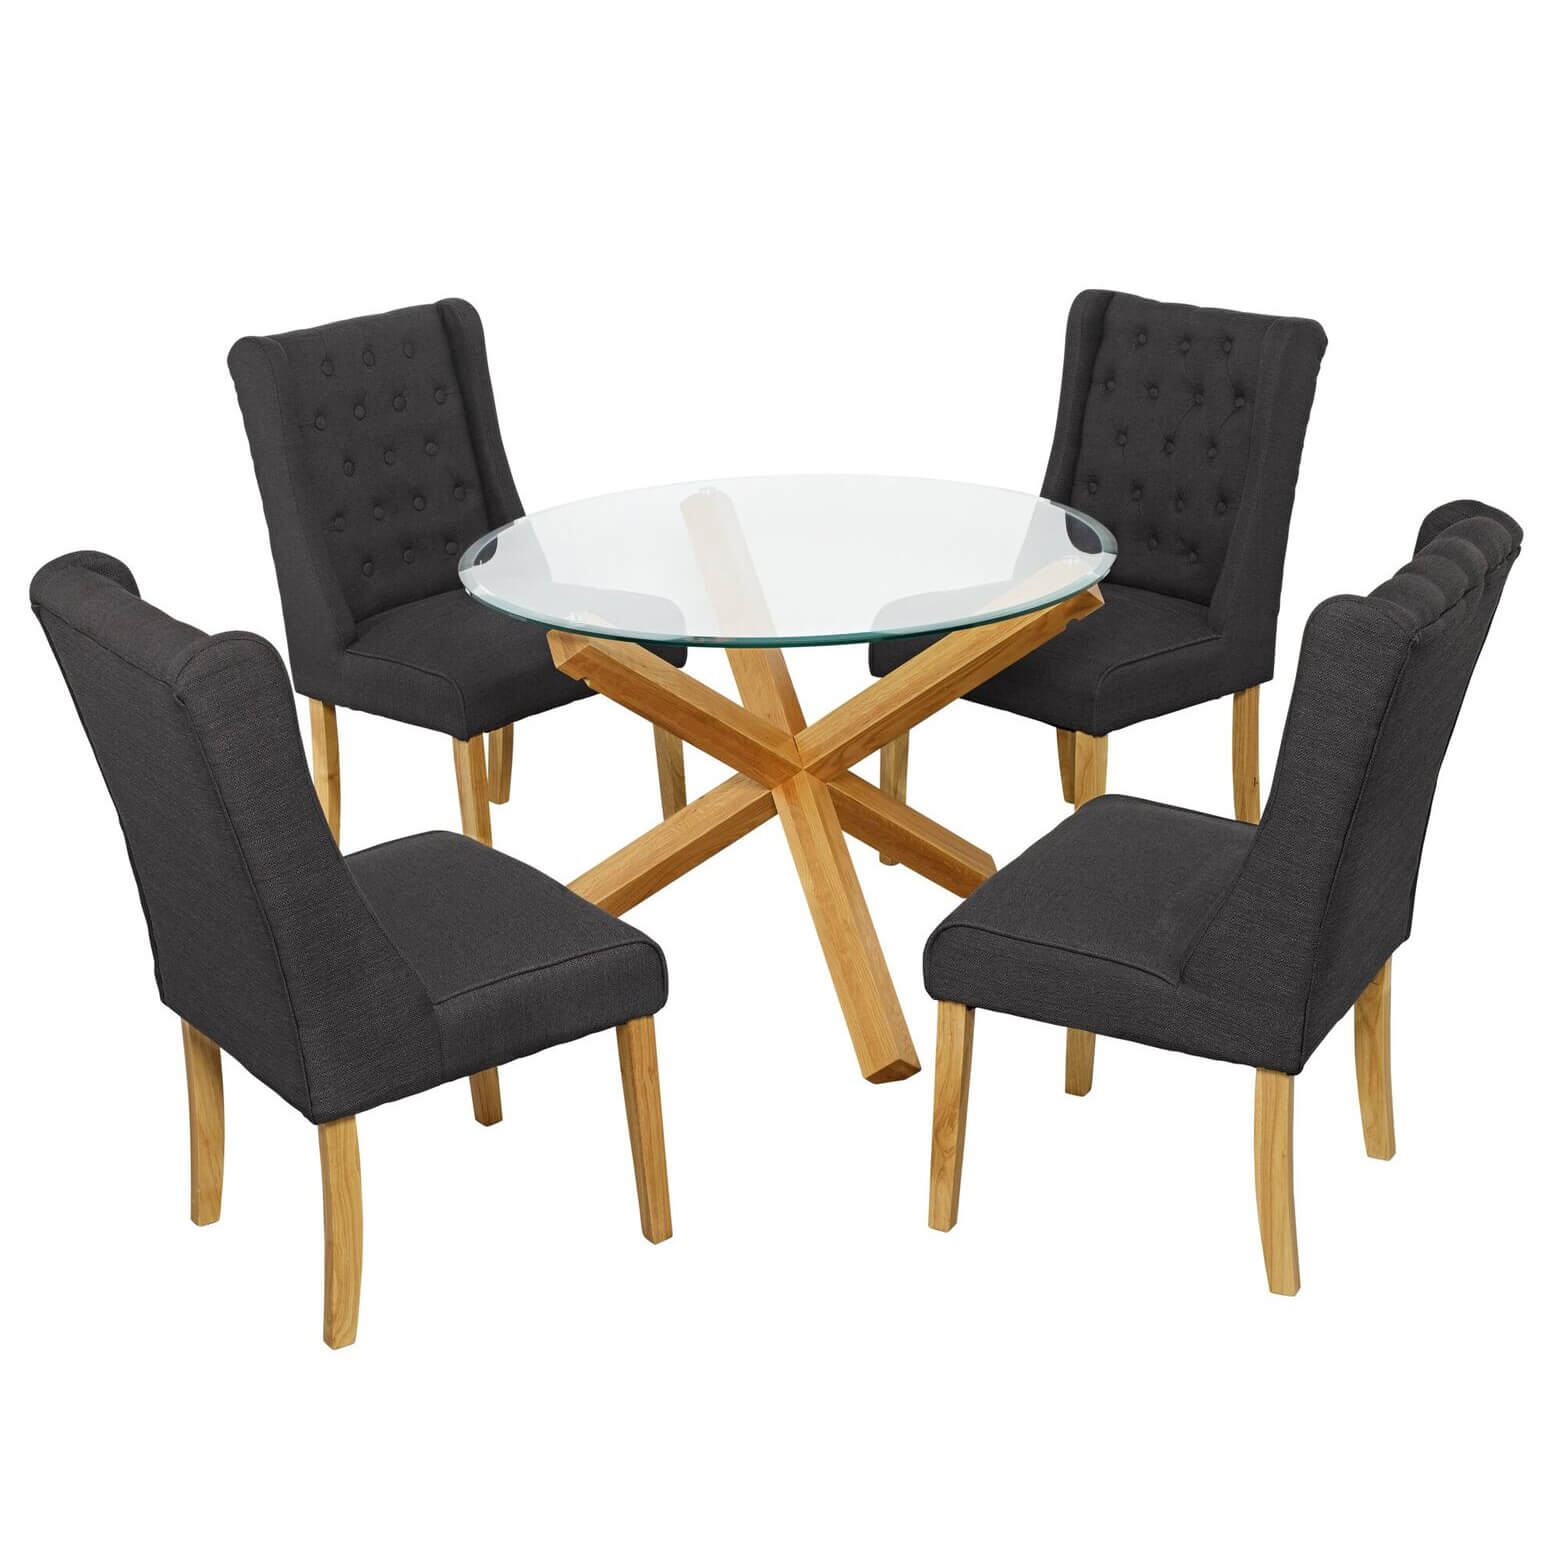 Grange glass dining table and 4 verona chairs fads for Dining chairs and tables